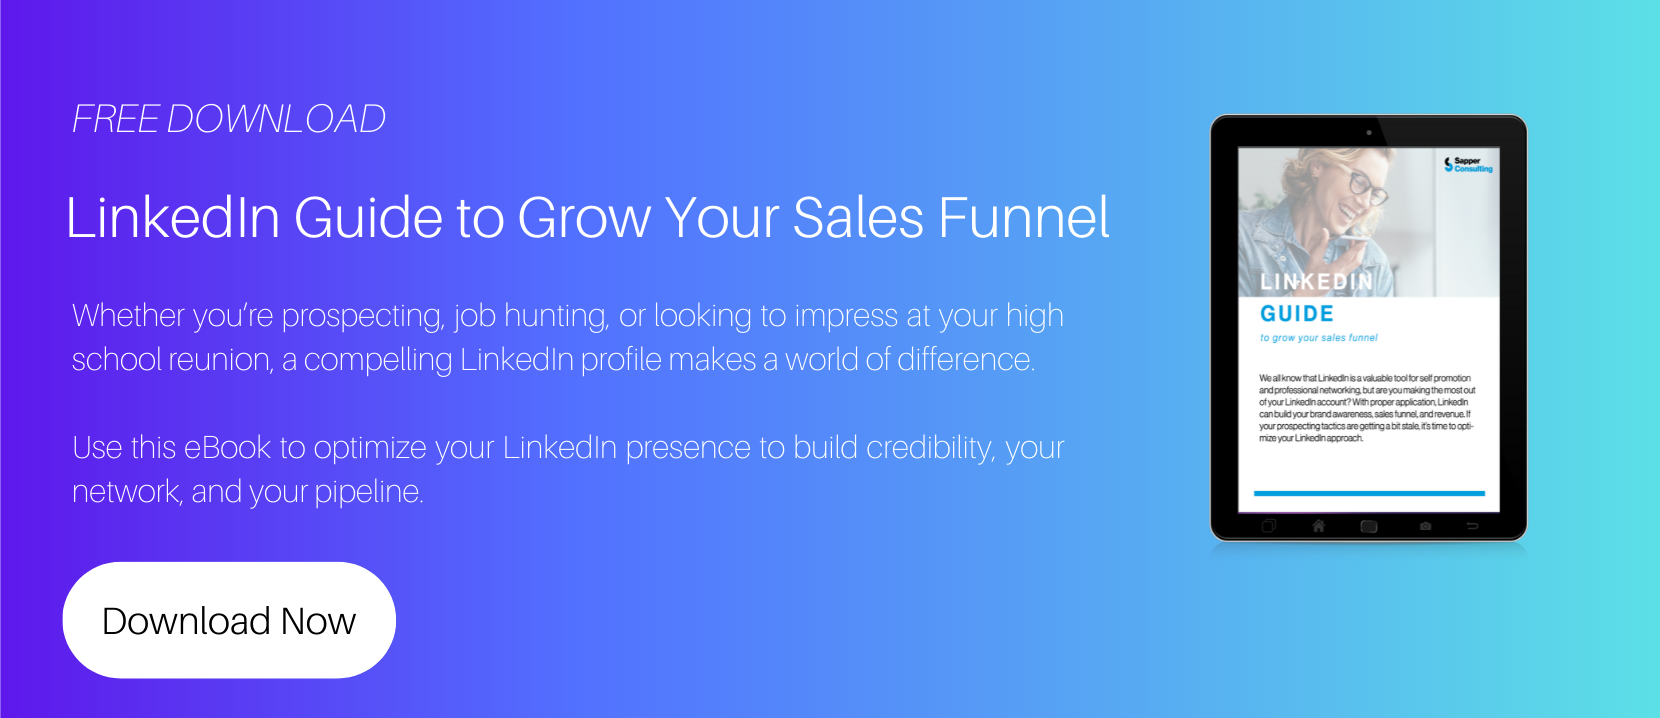 Linkedin Guide to Grow Your Sales Funnel